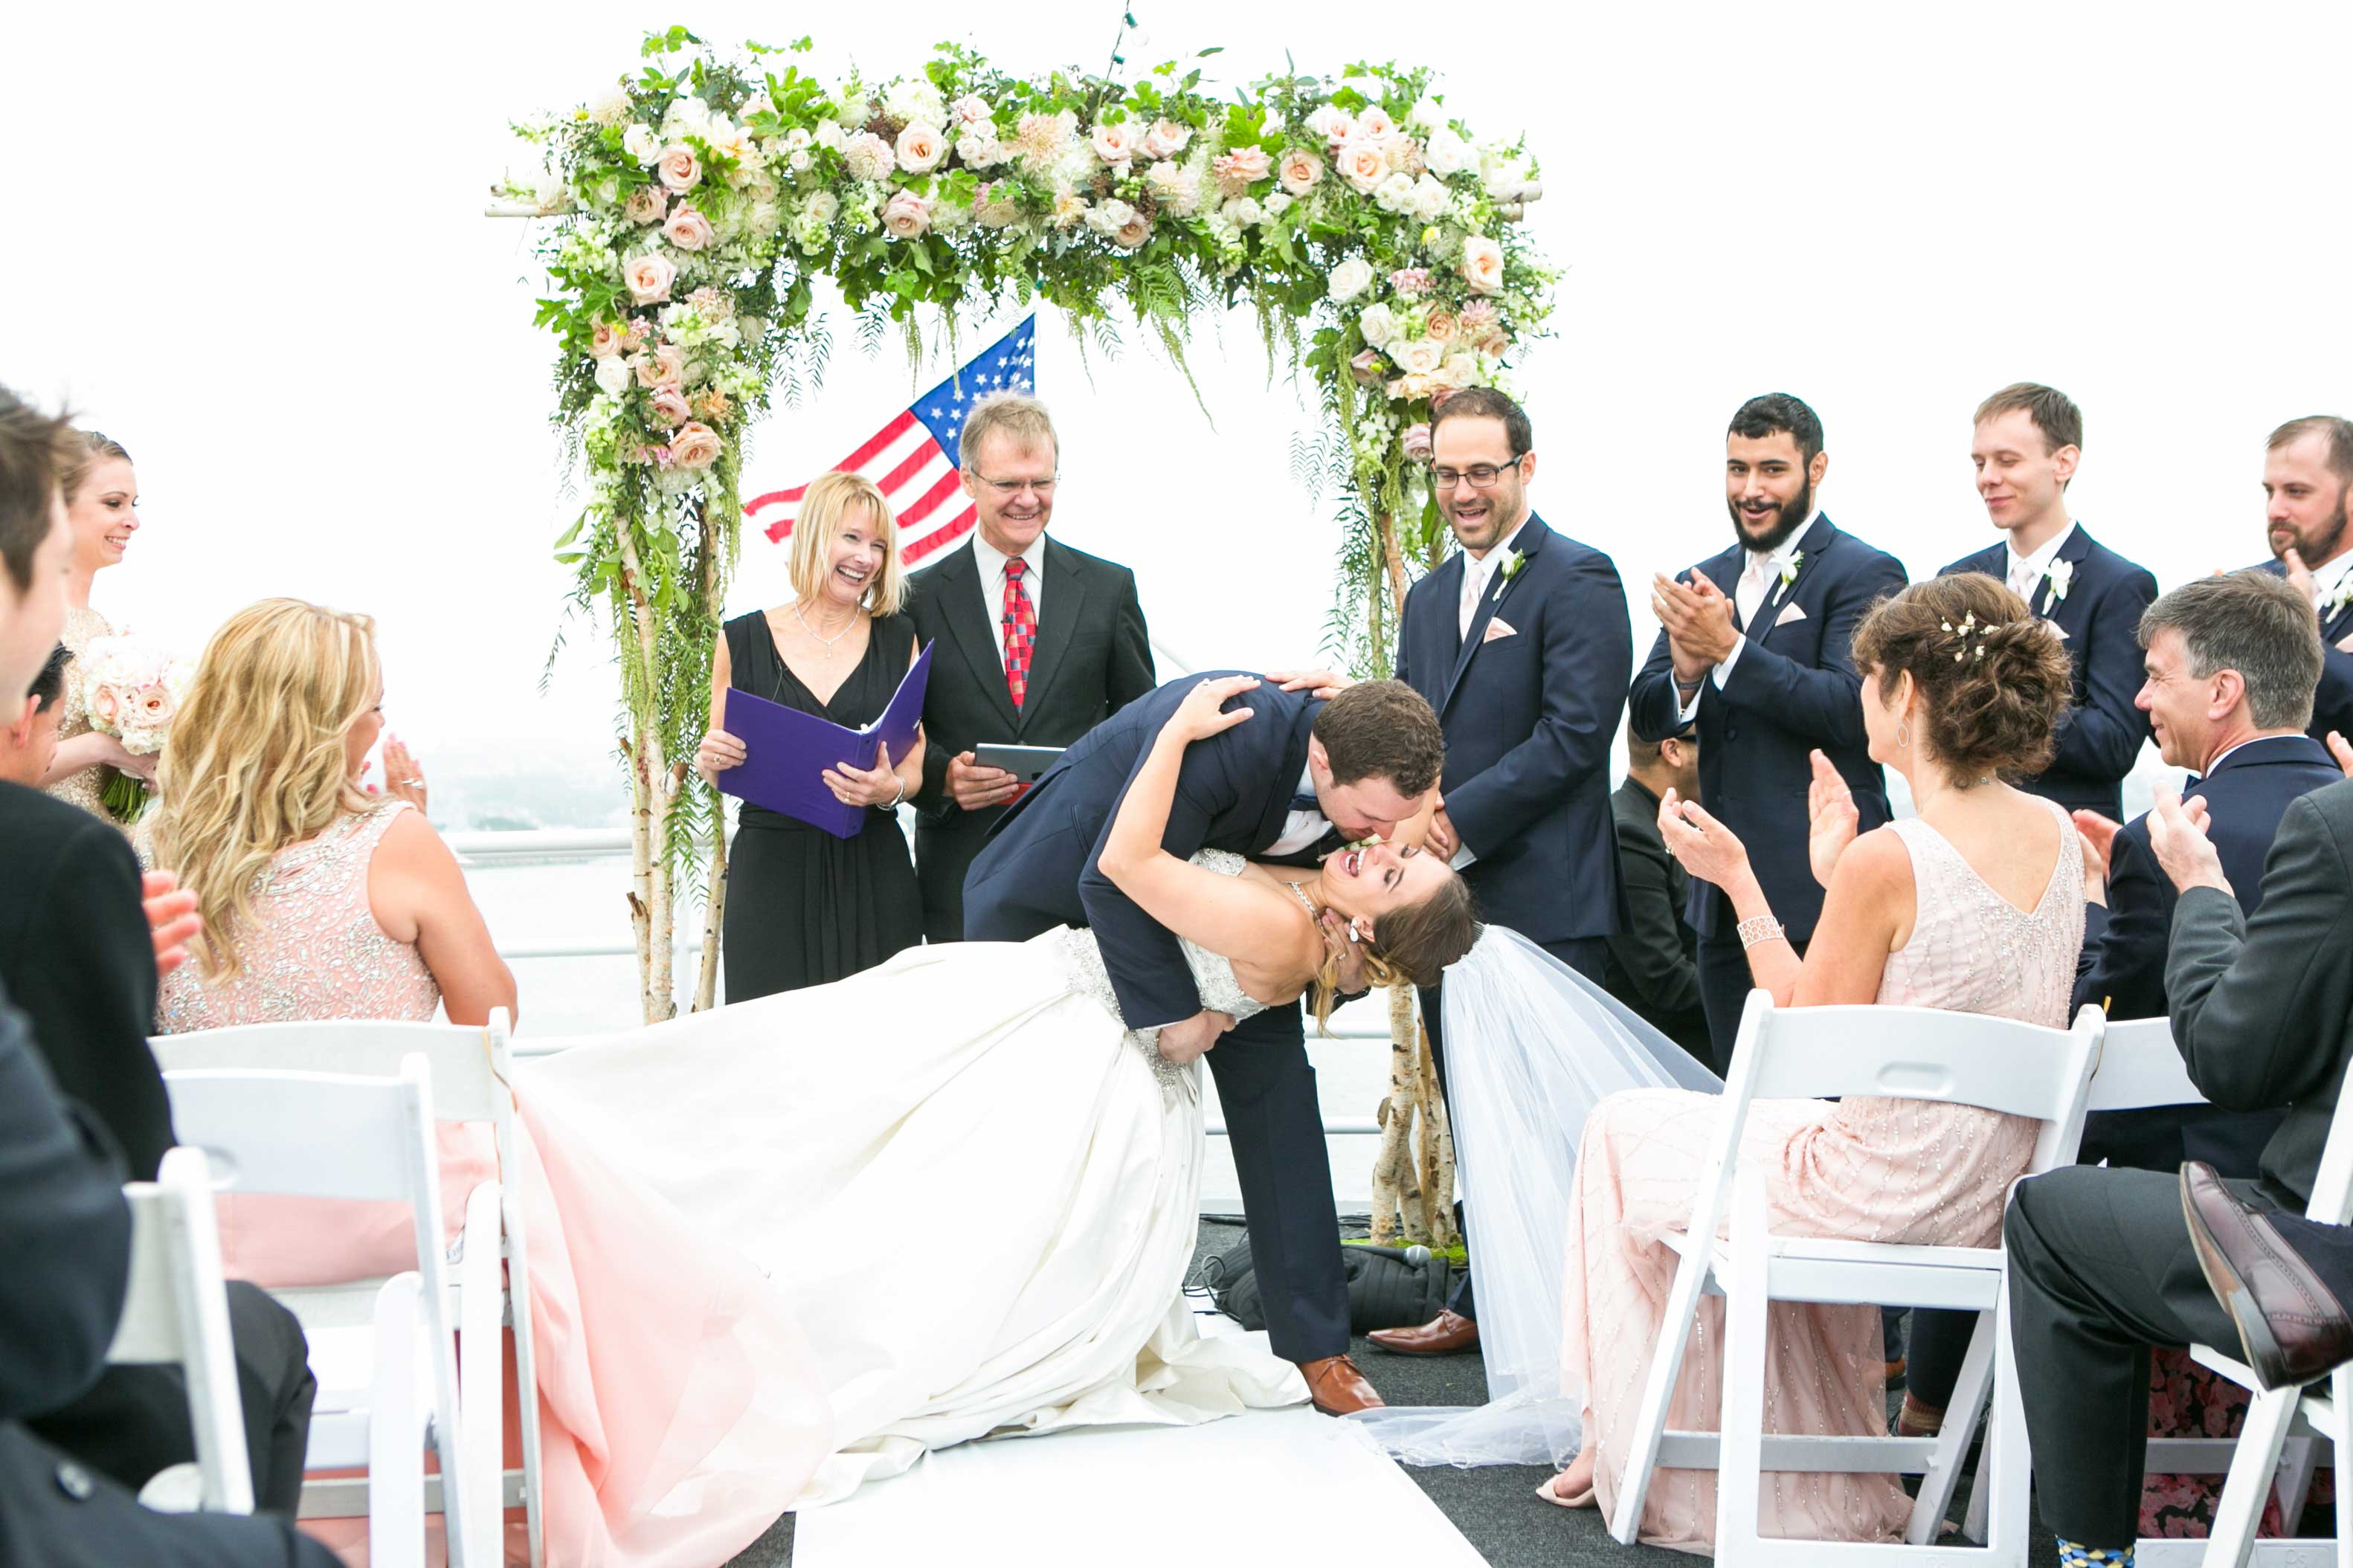 pros and cons of getting married on a yacht, should you get married on a yacht?